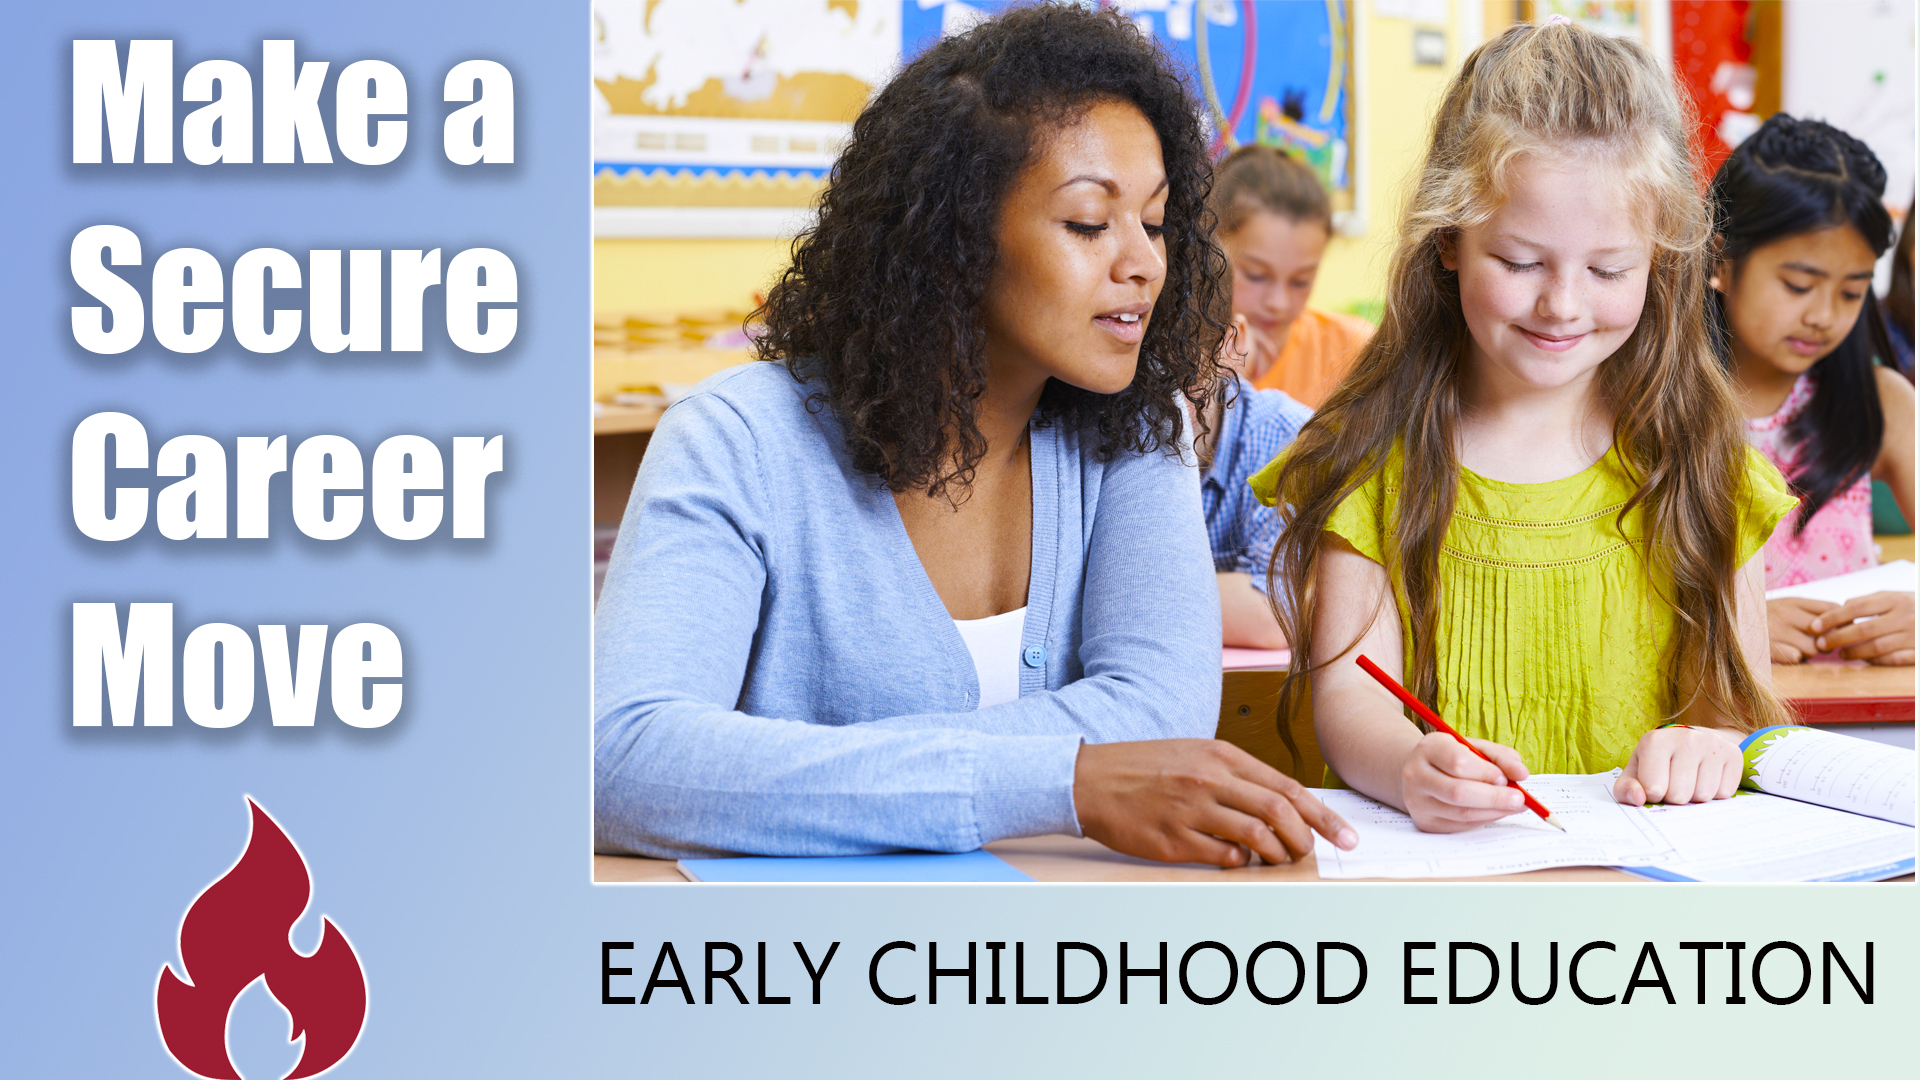 Make a secure career move to Early Childhood Education